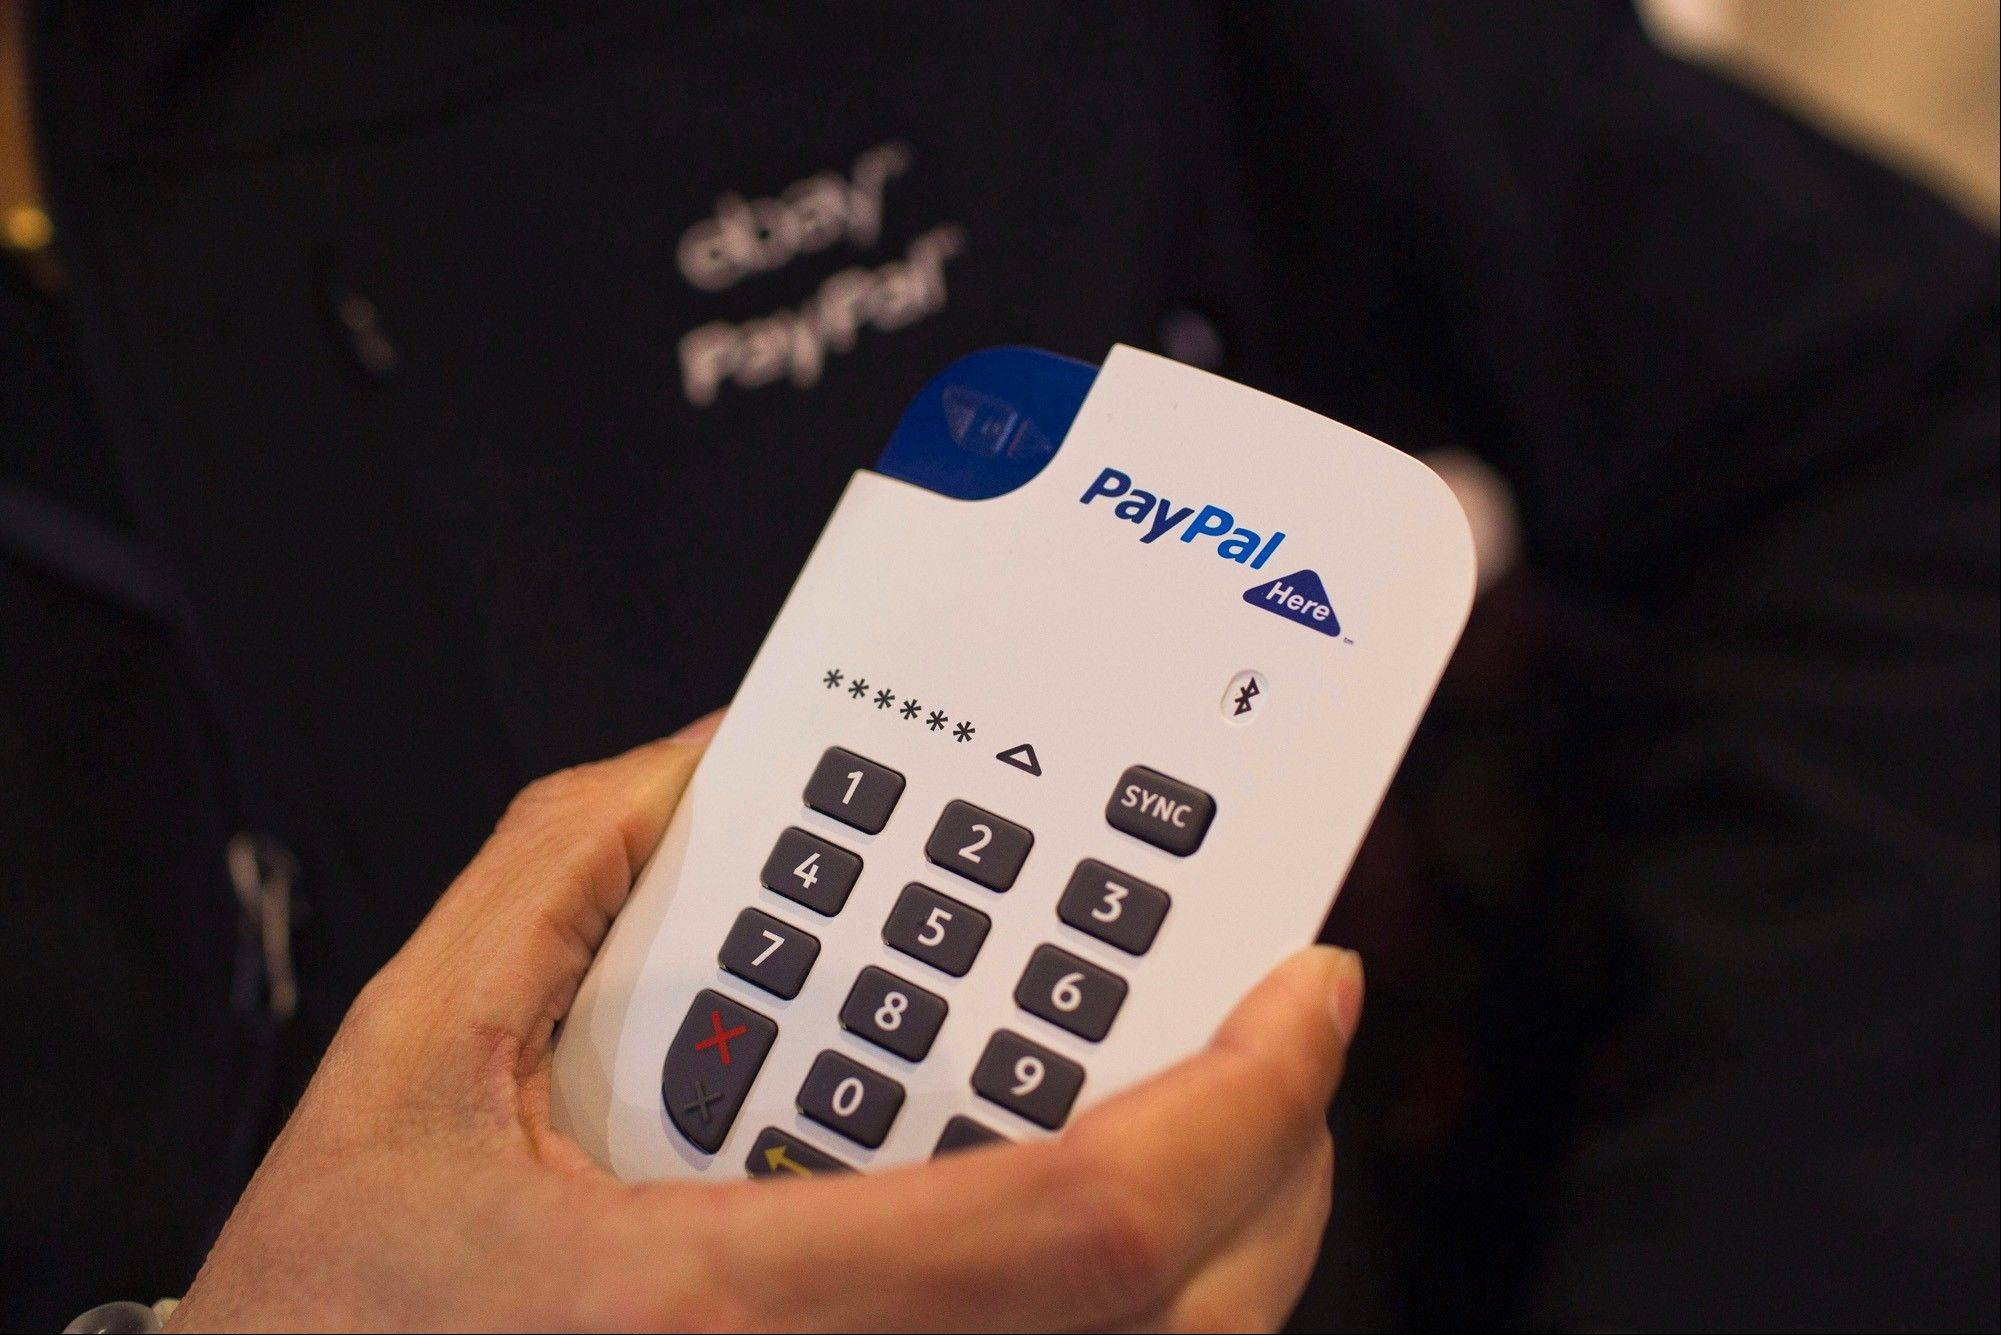 PayPal's new chip-and-pin payment device for small businesses, shown in February in Barcelona, Spain. The market for tools that help consumers buy goods via mobile phones is getting crowded, putting off venture capitalists and making it hard for many payment startups to compete against providers like PayPal.